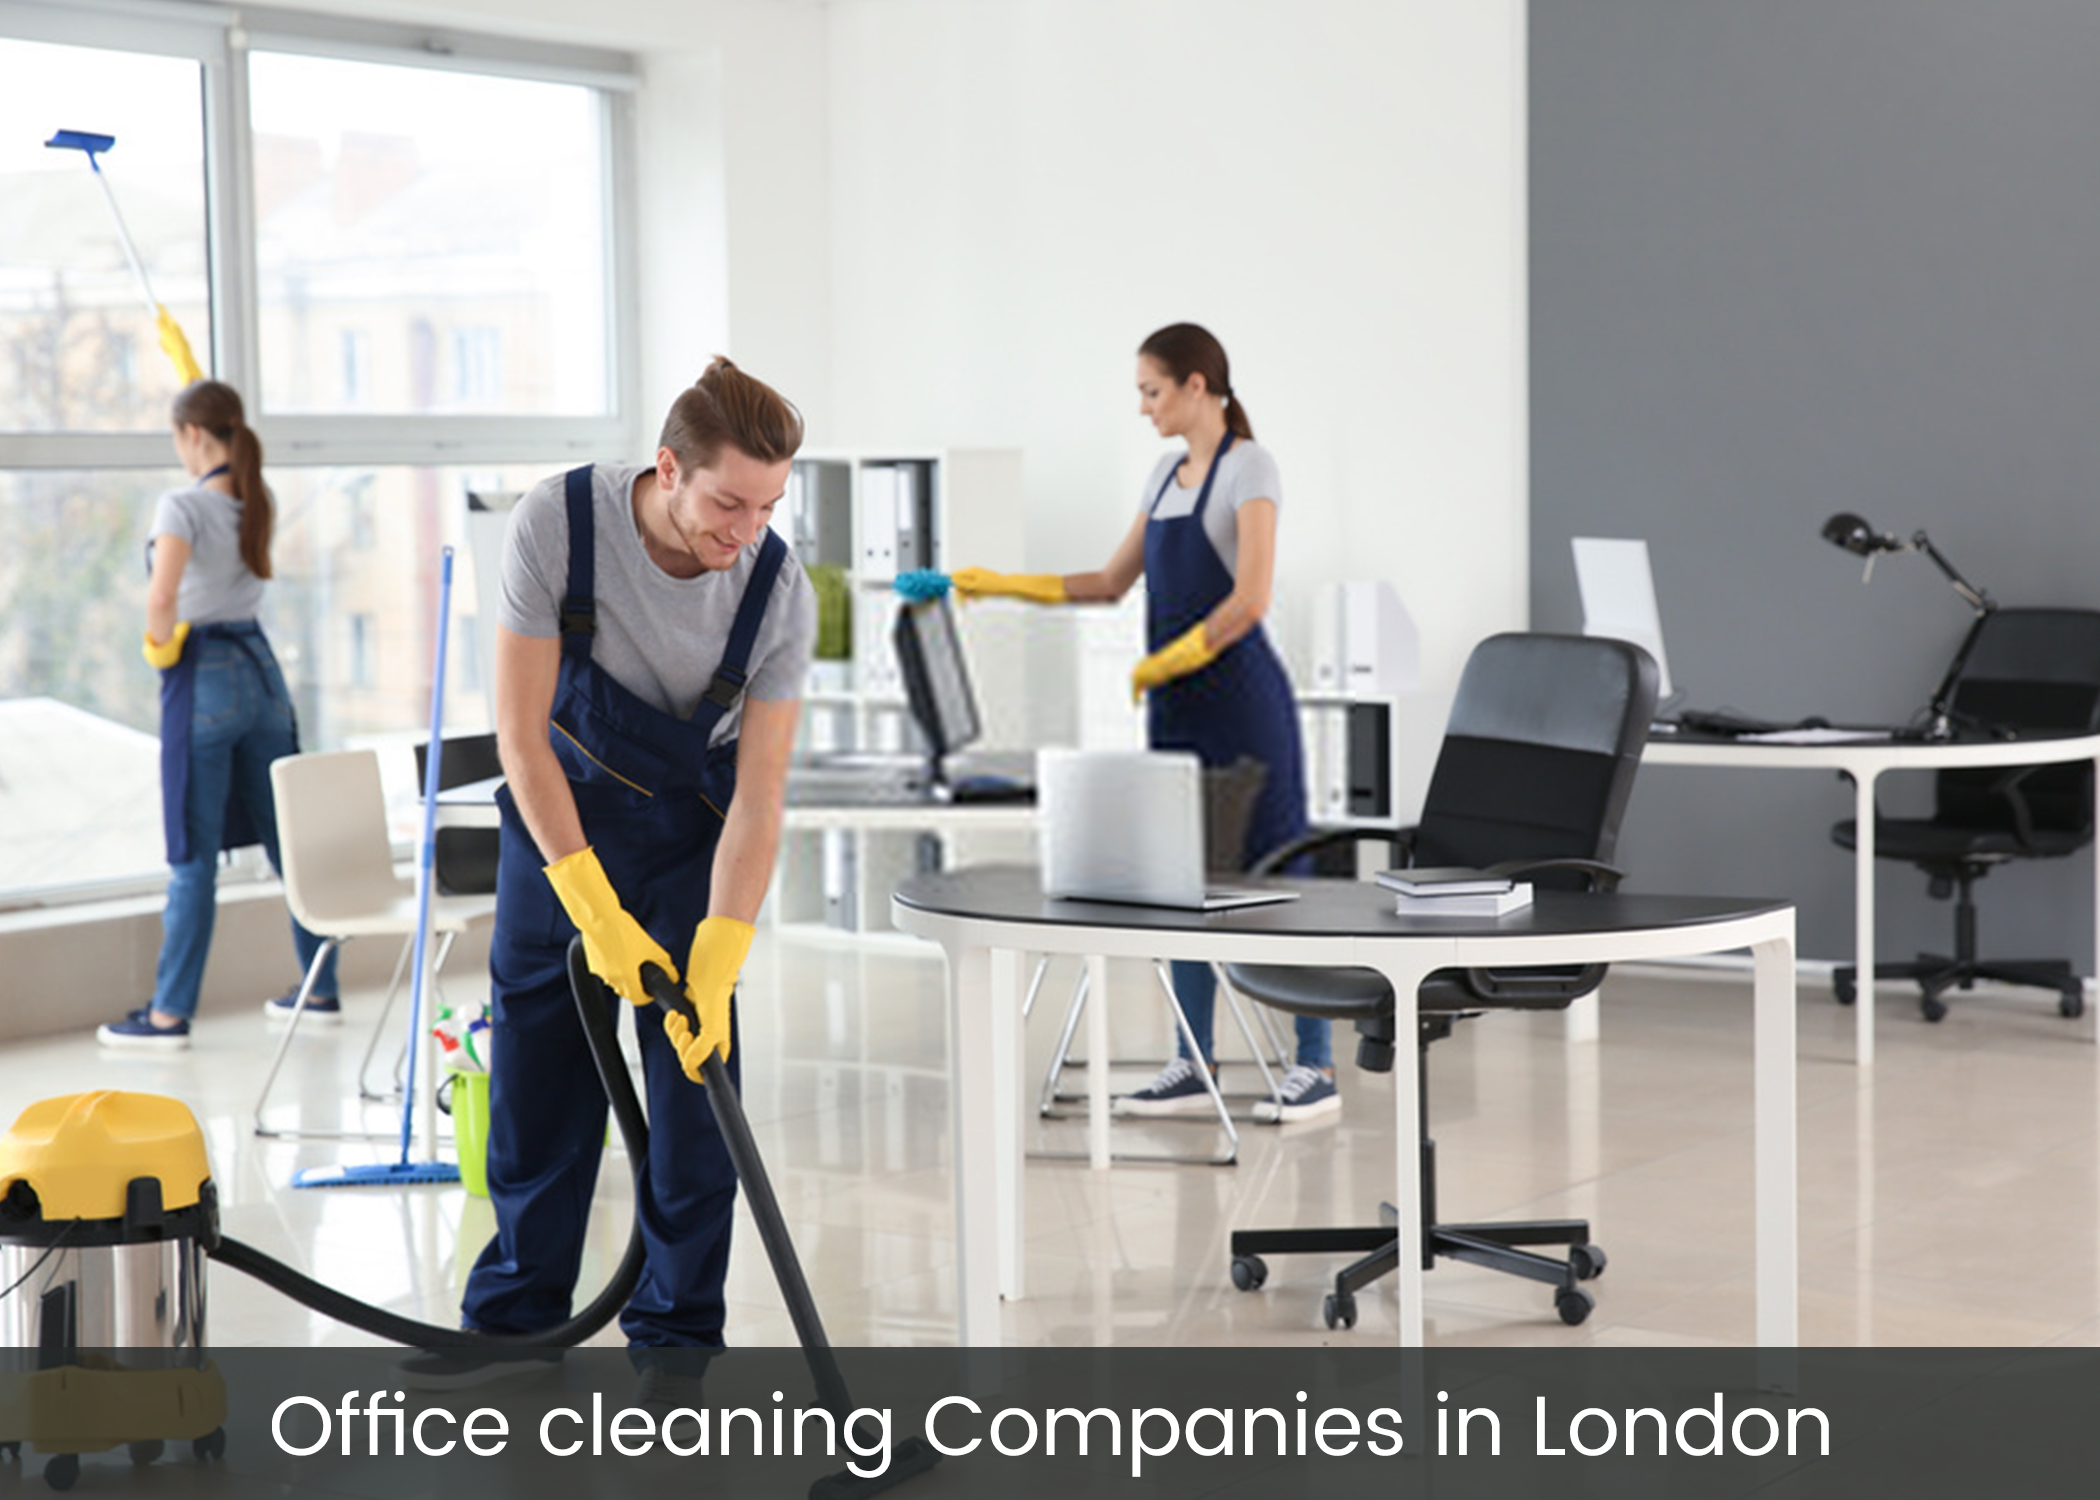 Office cleaning companies in London